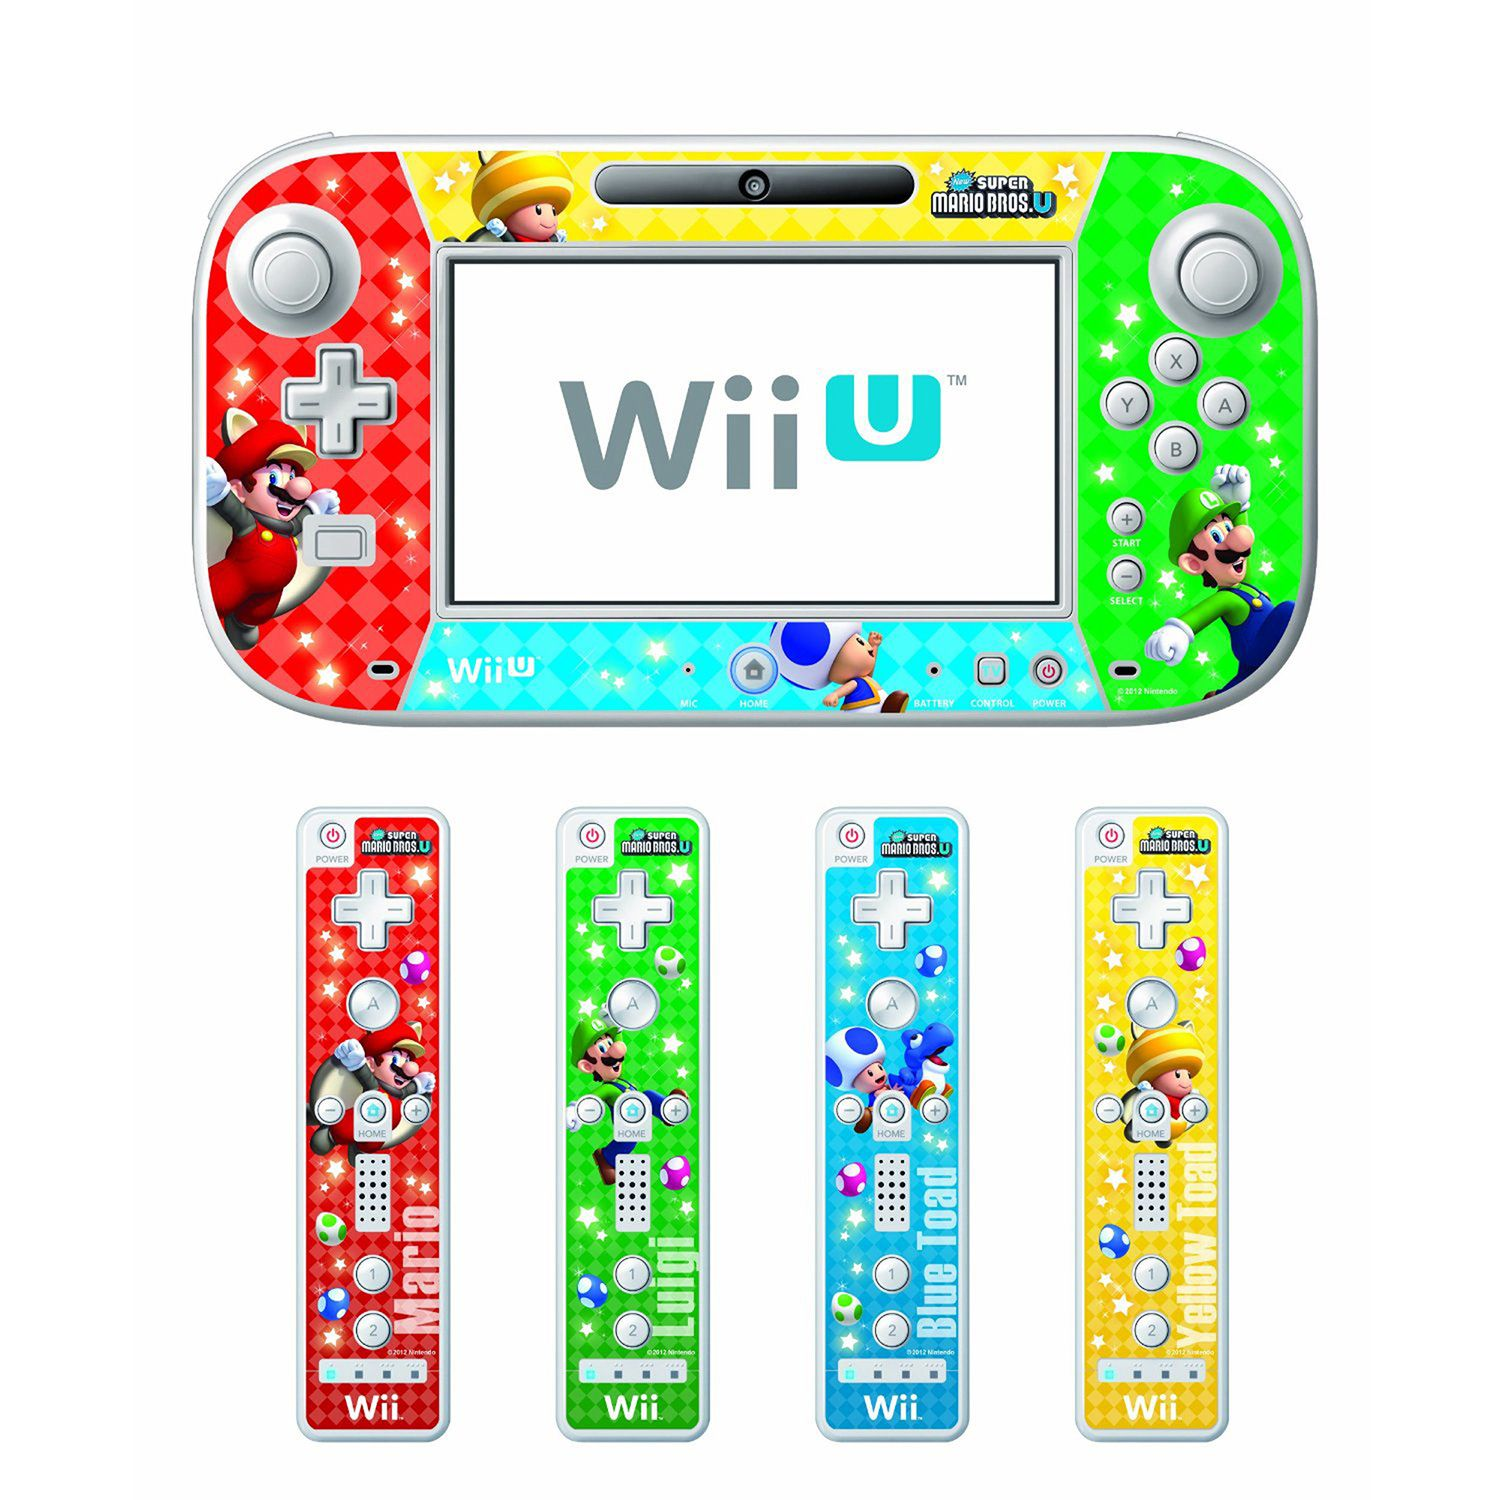 Buy Nintendo Wii U Wii U New Super Mario Bros U Skin And